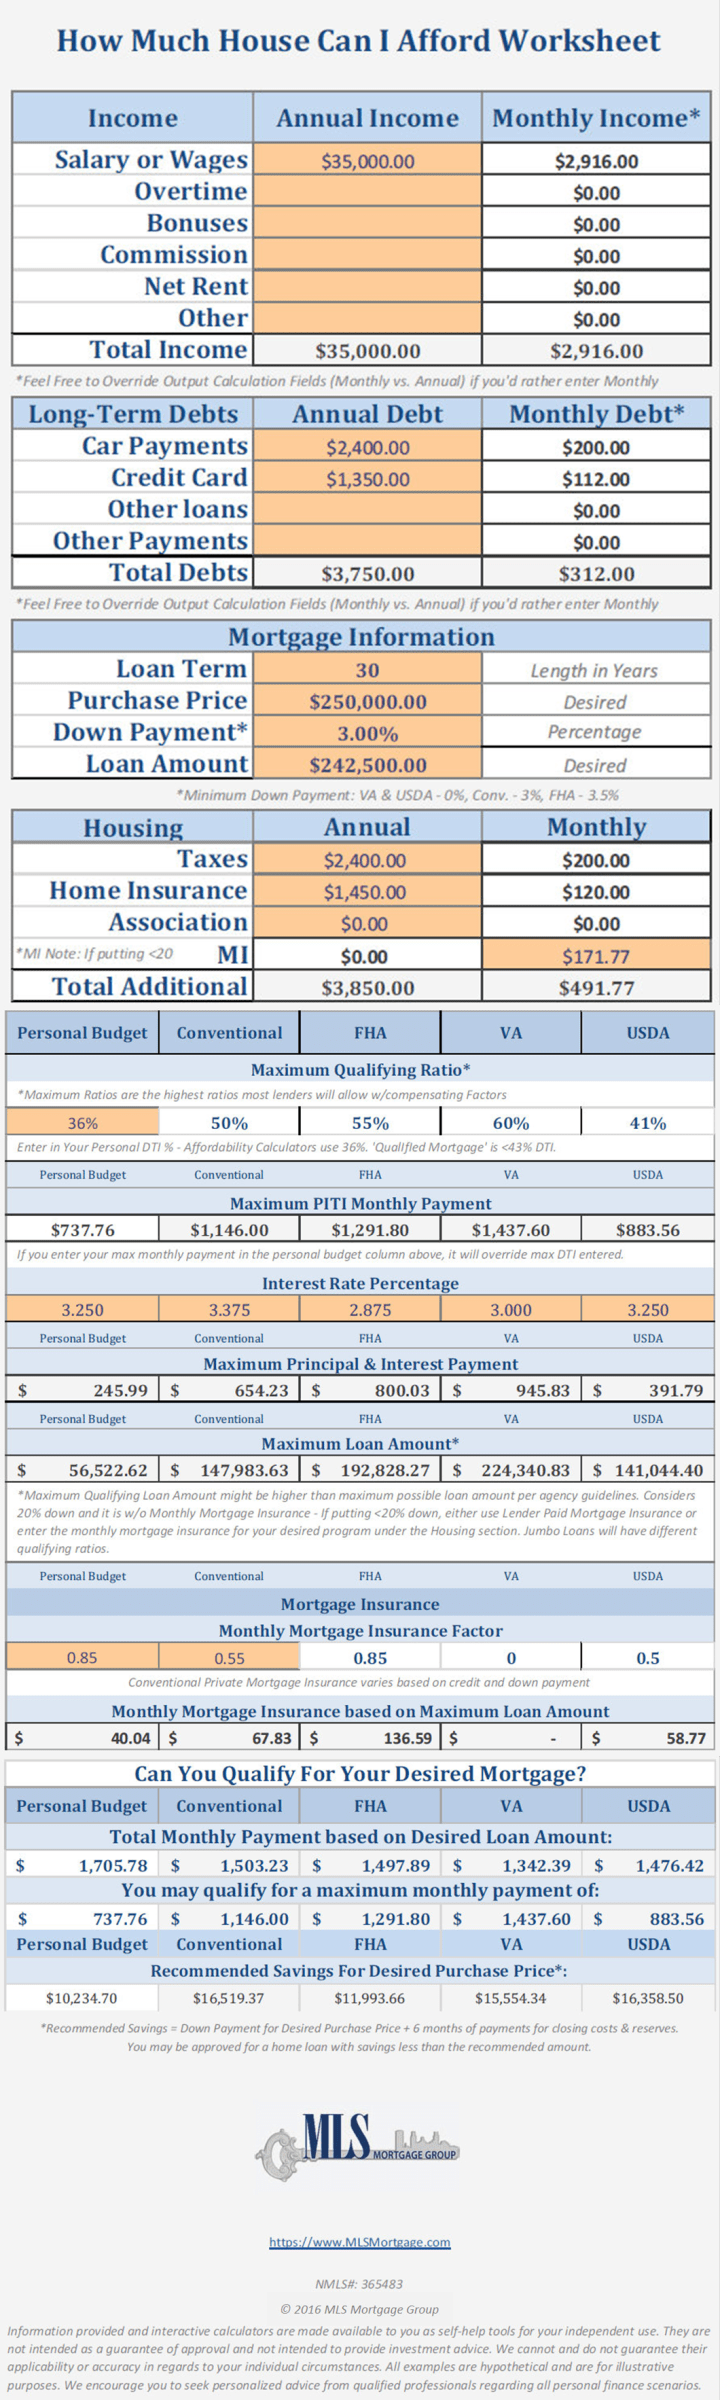 How Much House Can I Afford Insider Tips And Home Affordability Calculator Home Buying Process Buying First Home Home Buying Tips